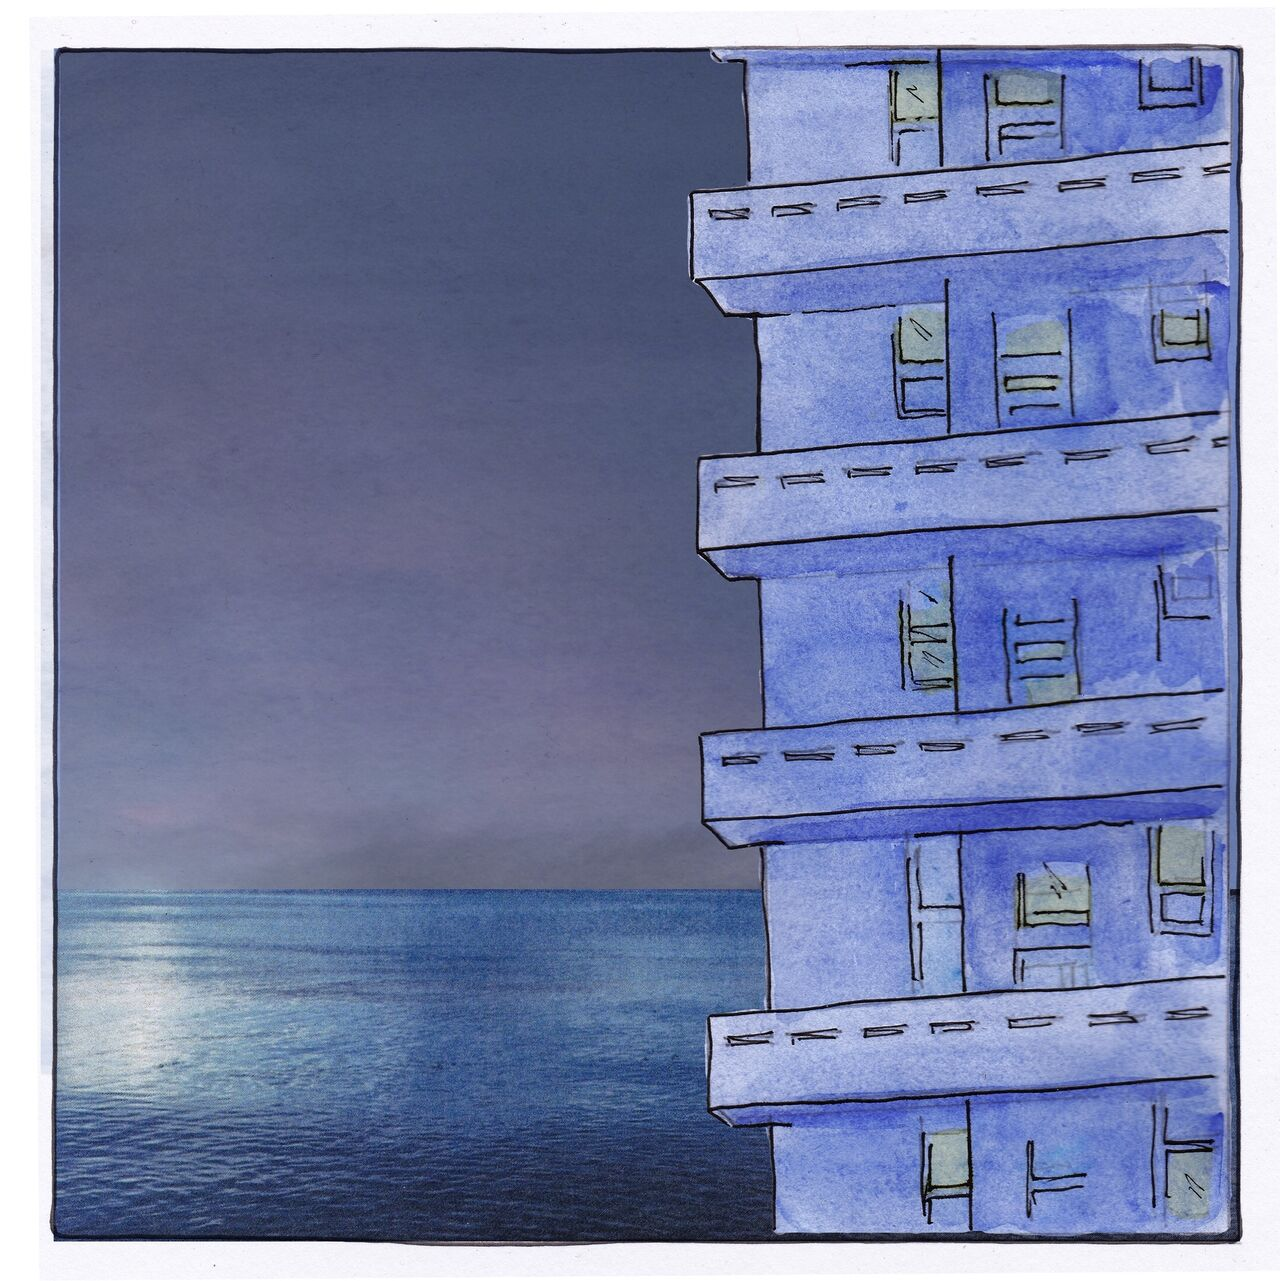 The final image for this chapter is a collage of the high rise block against the dark dusk sky.